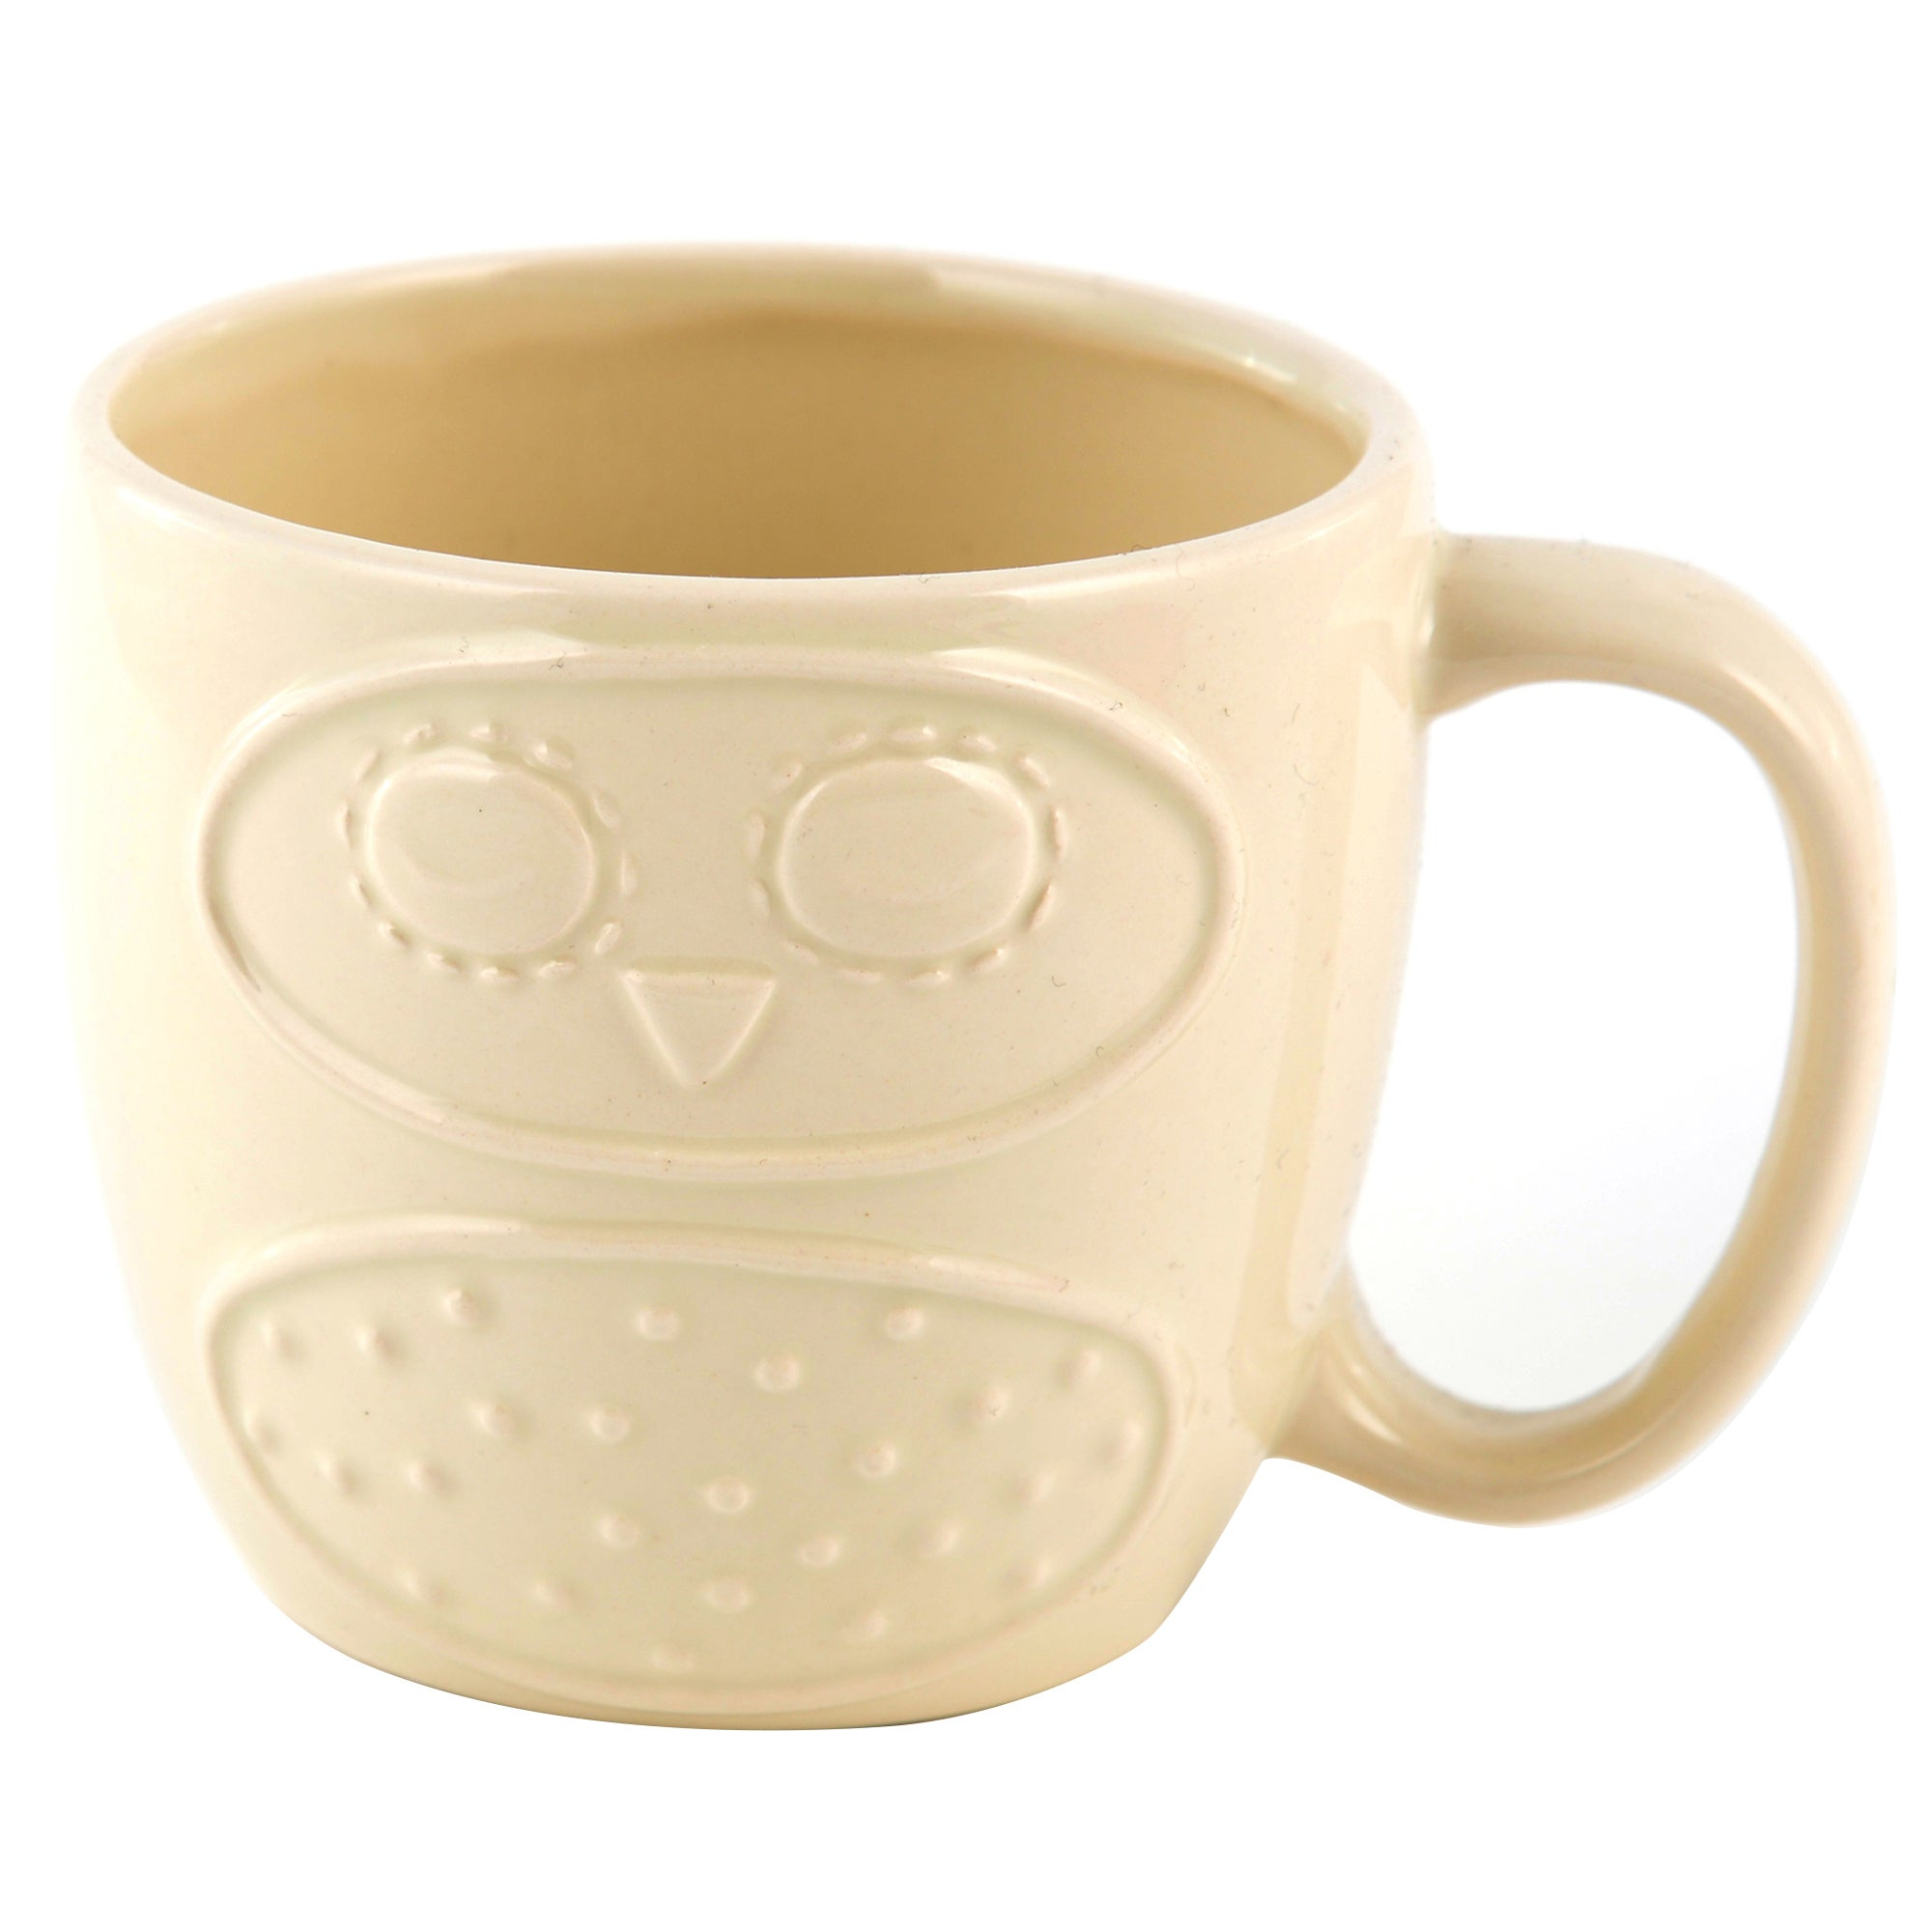 Owl Shaped Mug